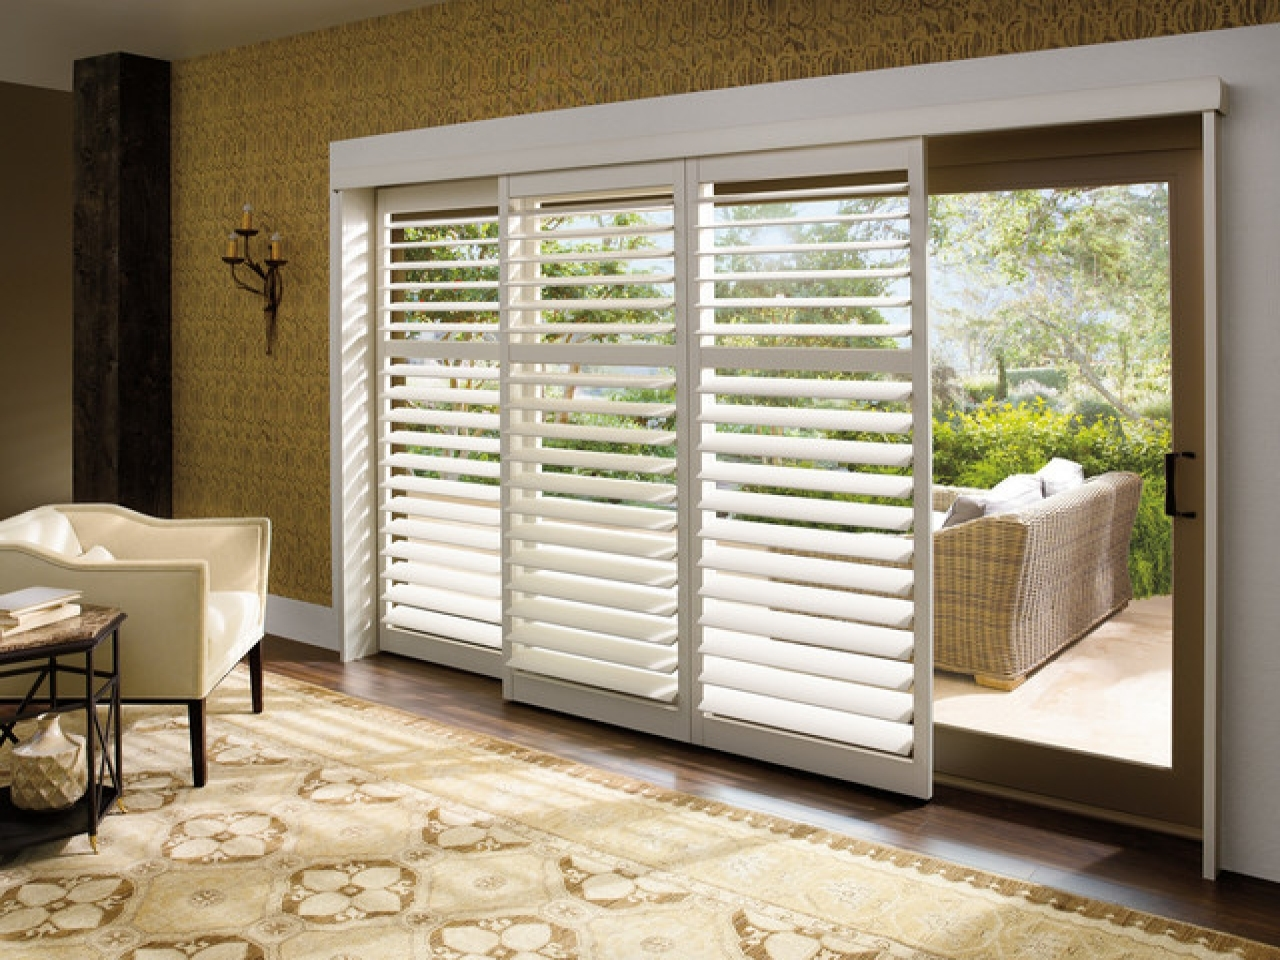 Blinds For Large Sliding Patio Doorswindow treatments for sliding glass doors ideas tips